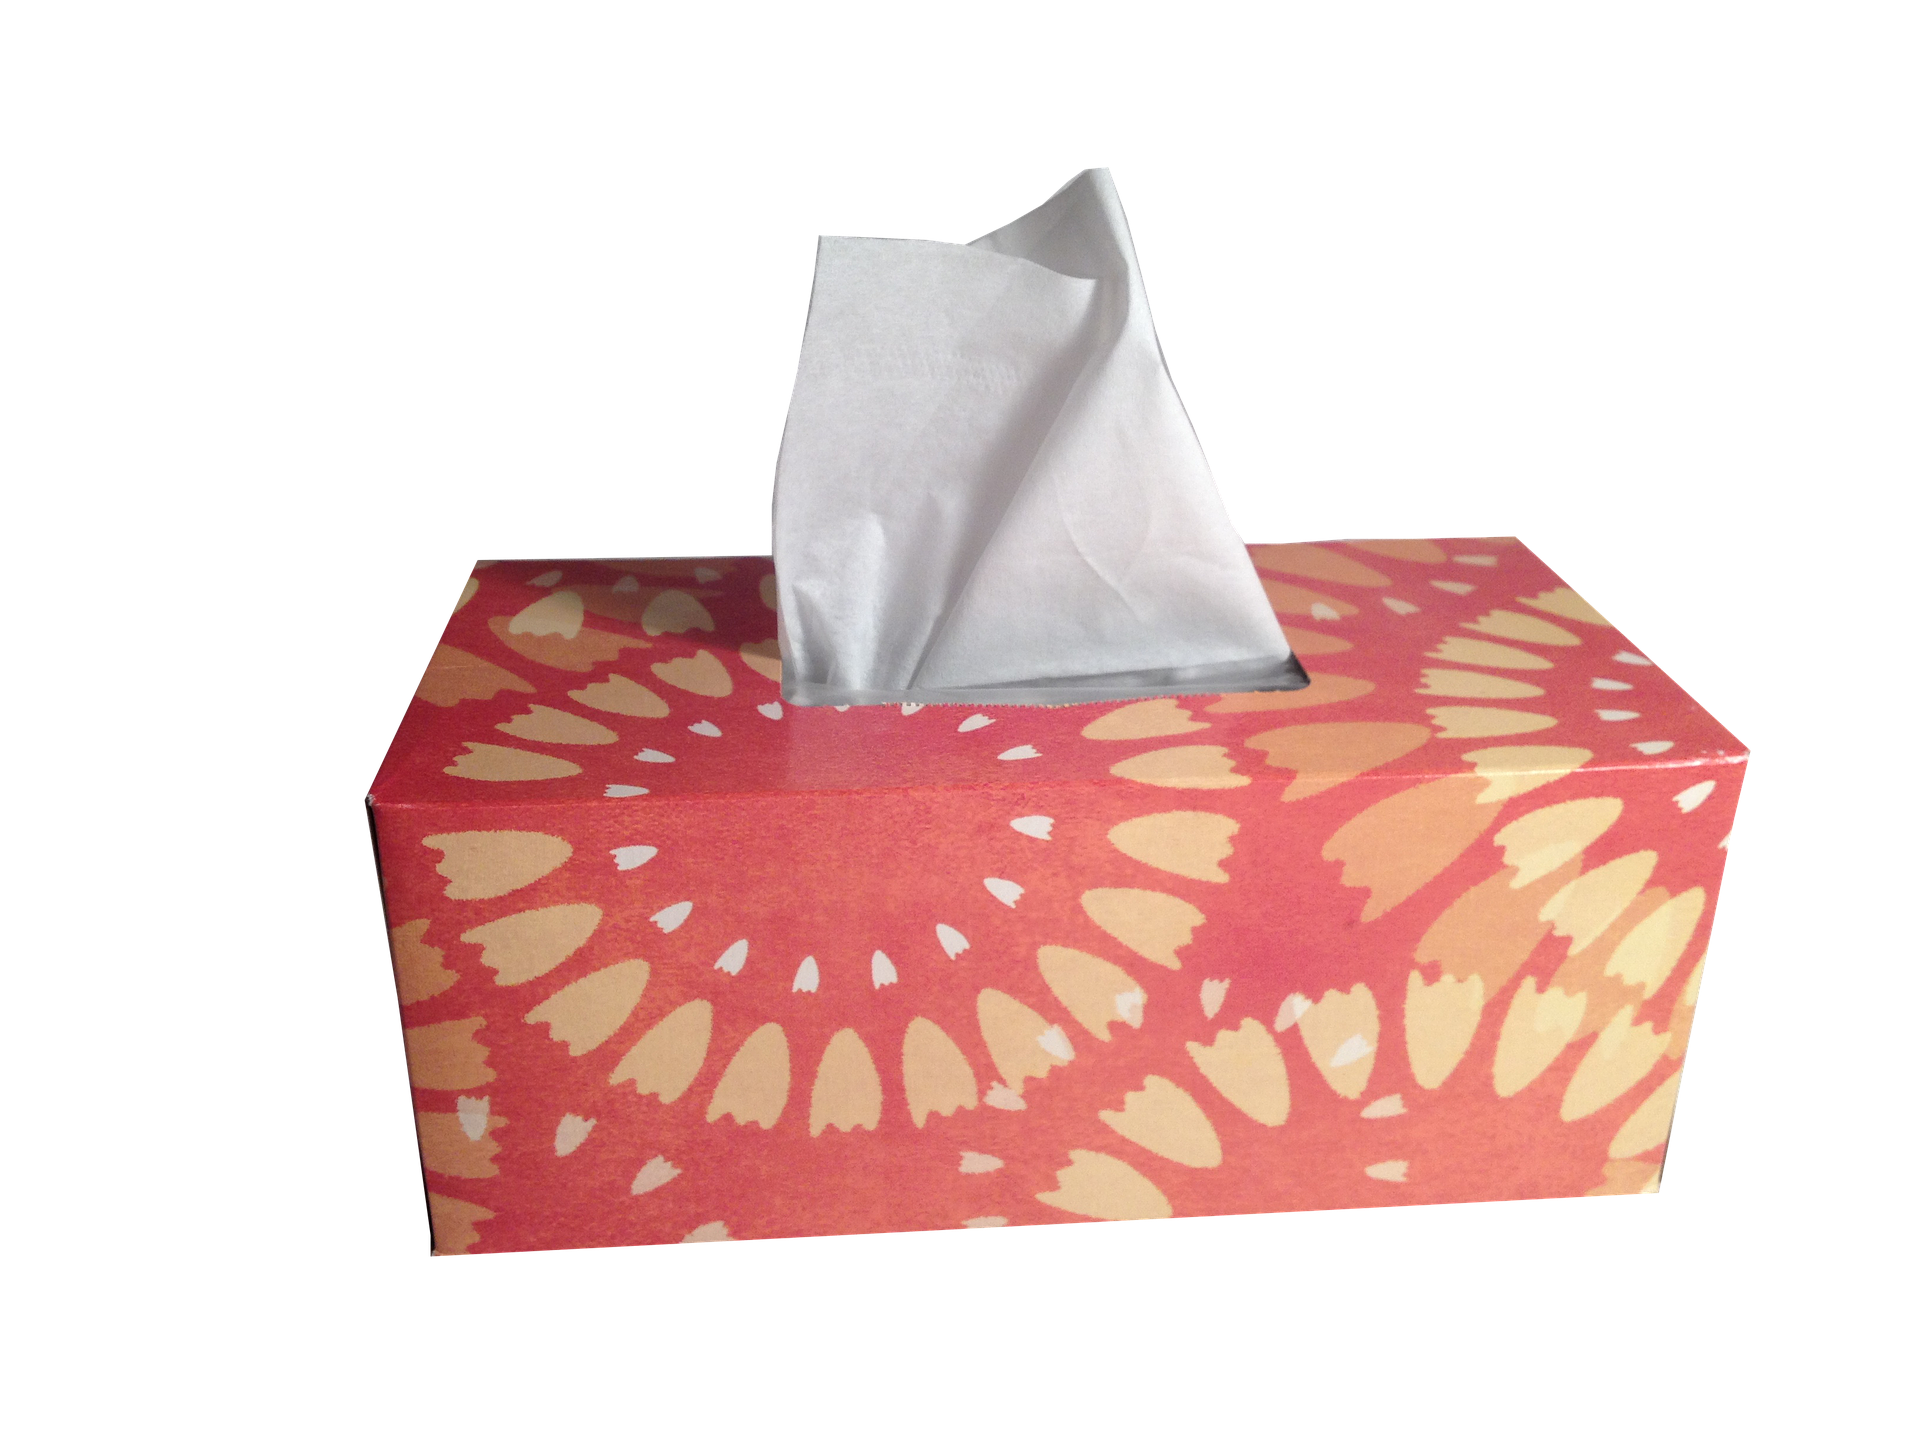 All tissue box sizes are acceptable and you can use as many tissue boxes as you wish to create the innovated product.   Check the Rules Tab for Specific Information!